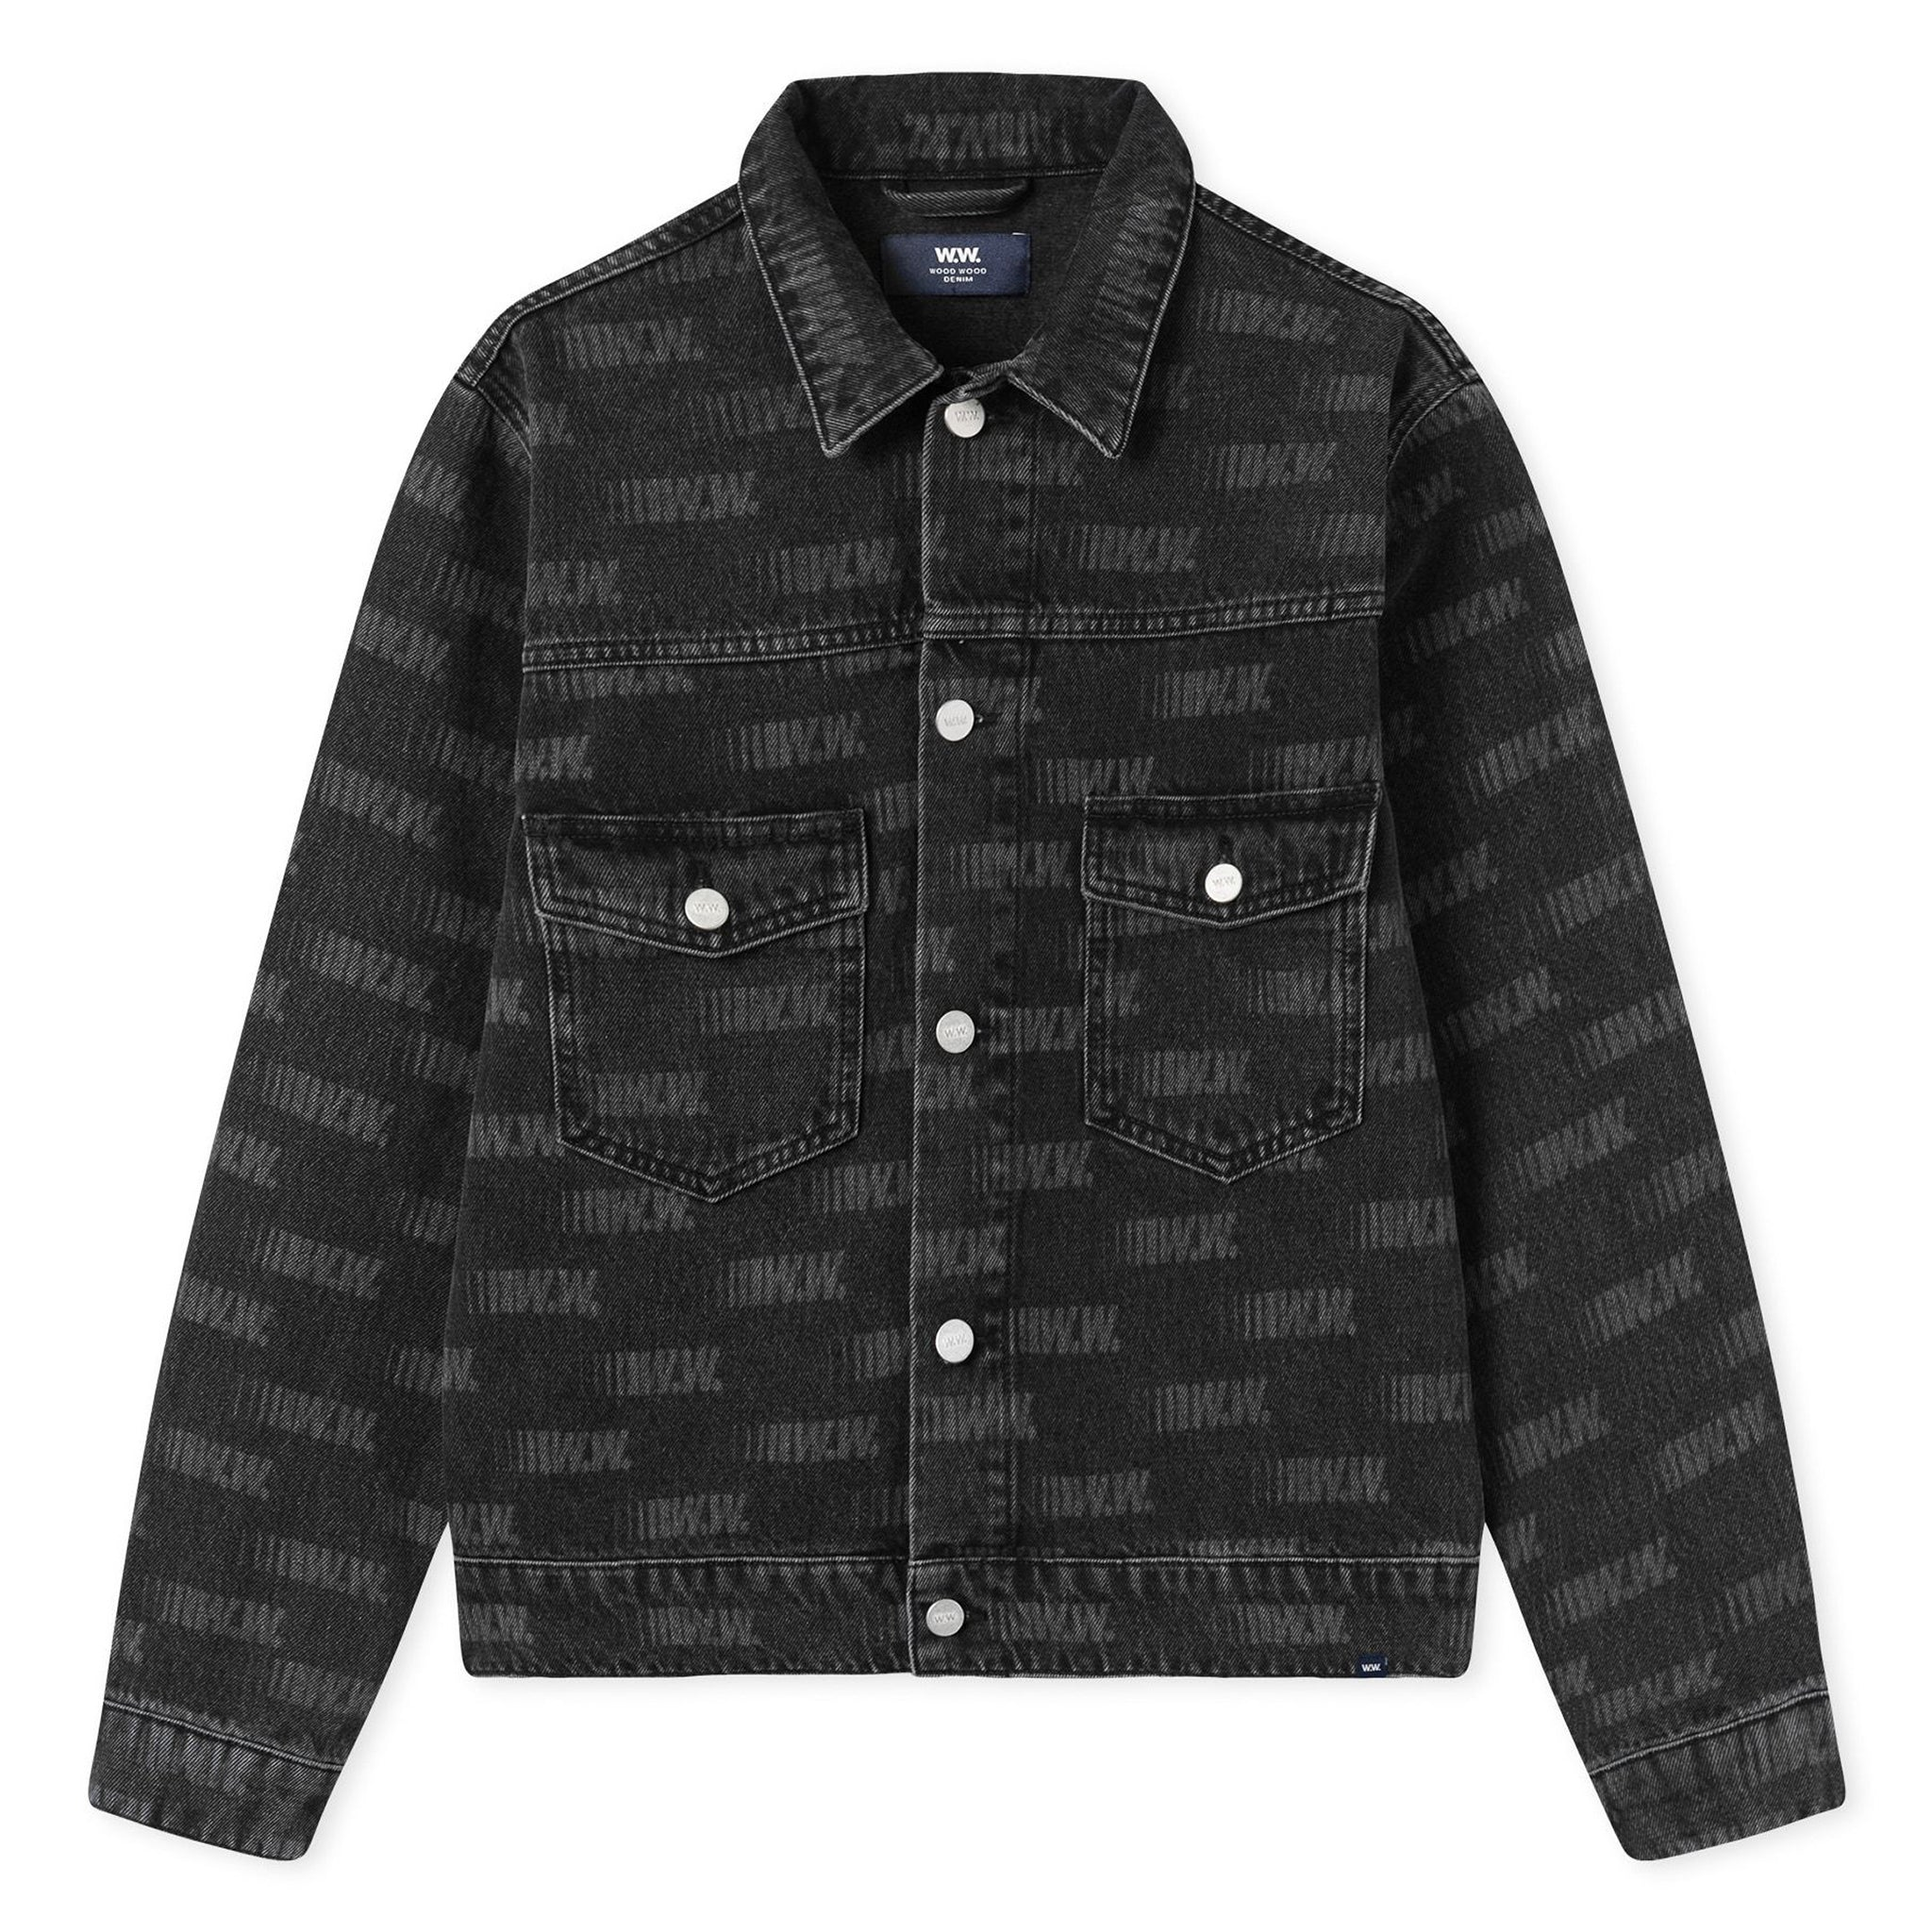 Wood Wood Cam Jacket Black All Over Print